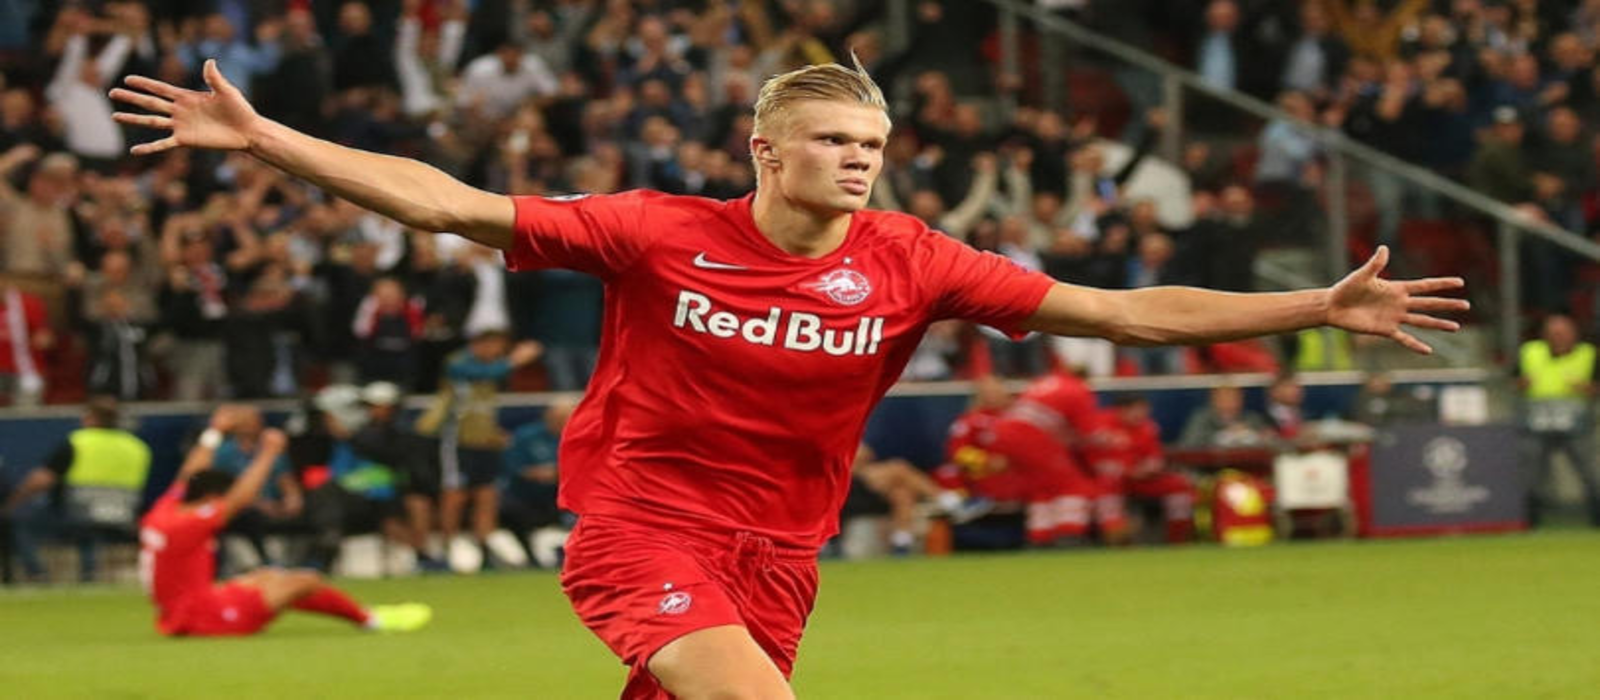 Red Bull Leipzig new favourites in Erling Haaland pursuit